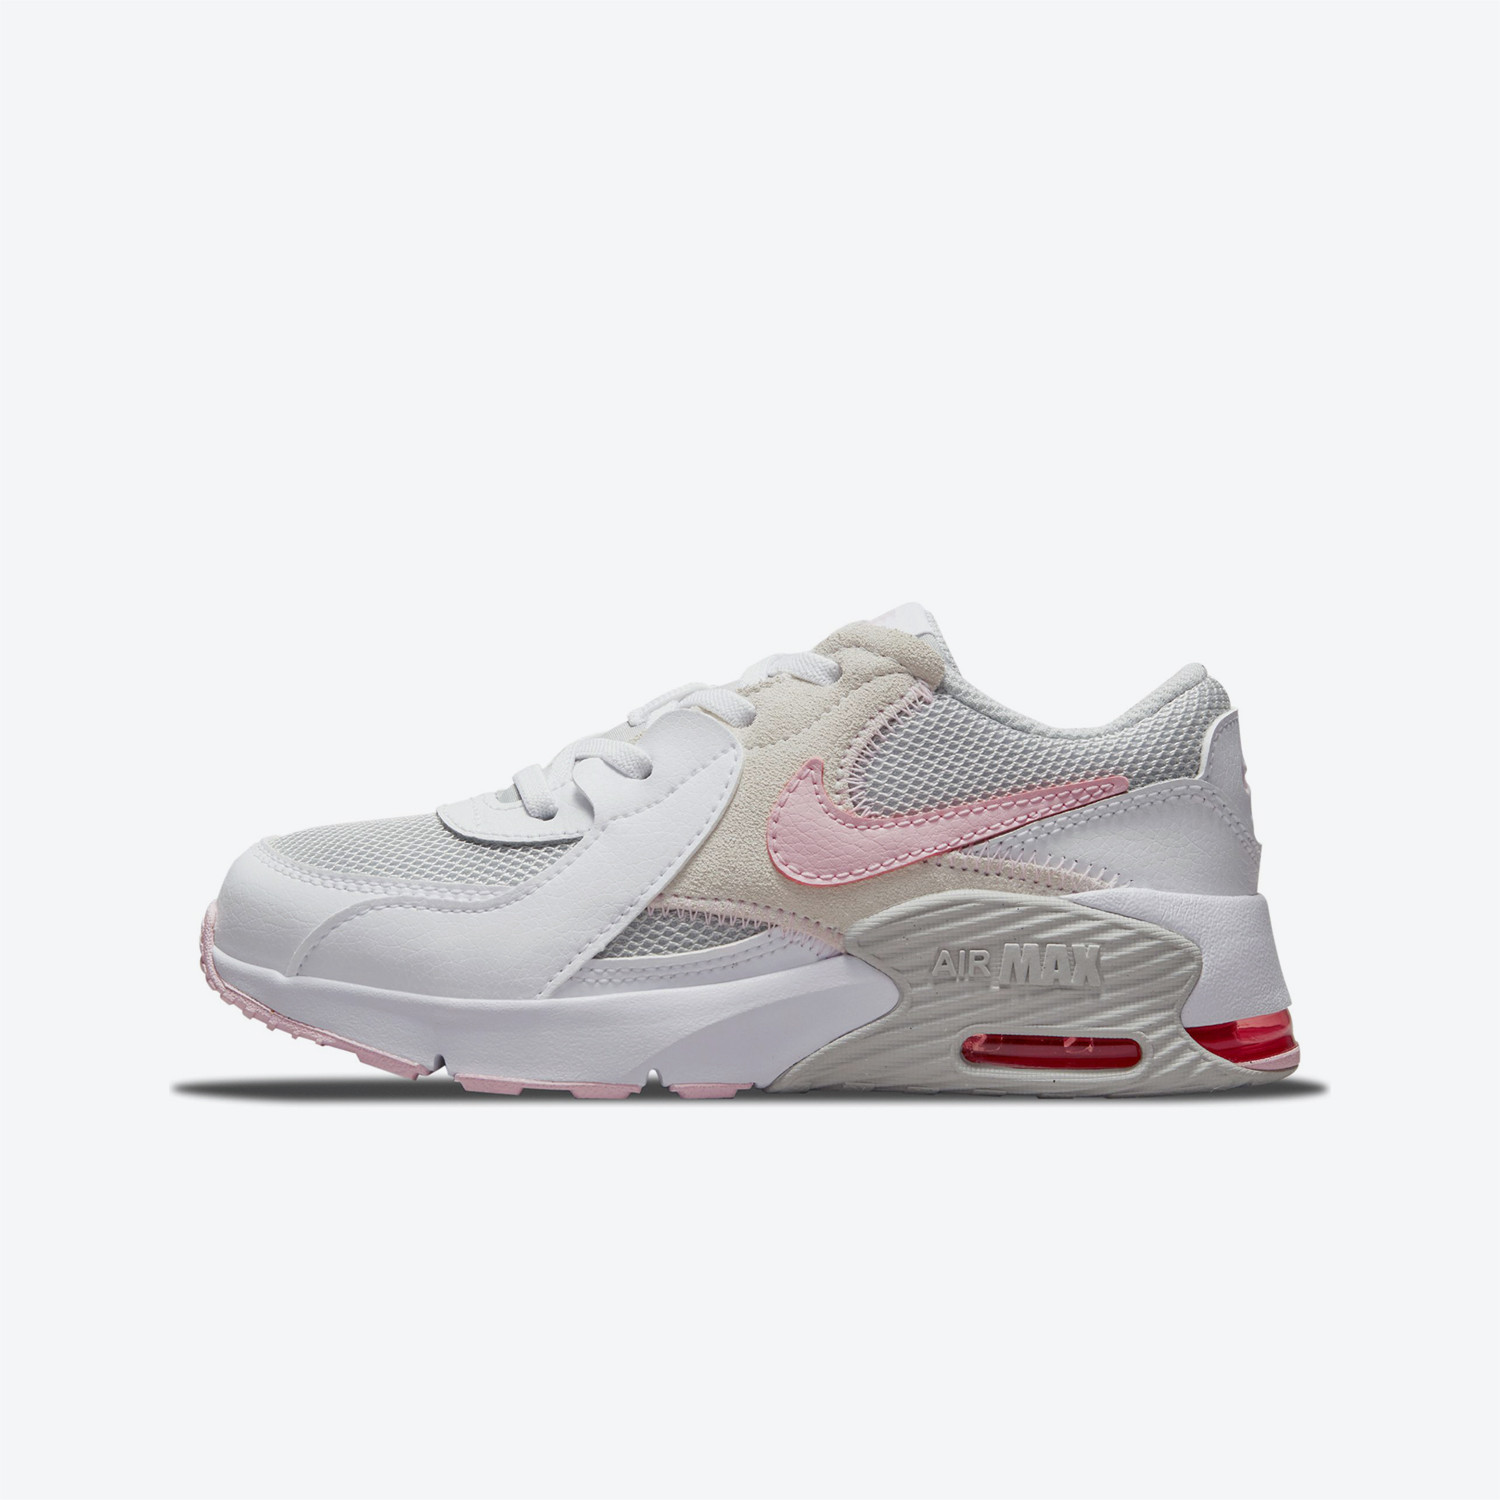 Nike Air Max Excee Παιδικά Παπούτσια (9000080249_53505)